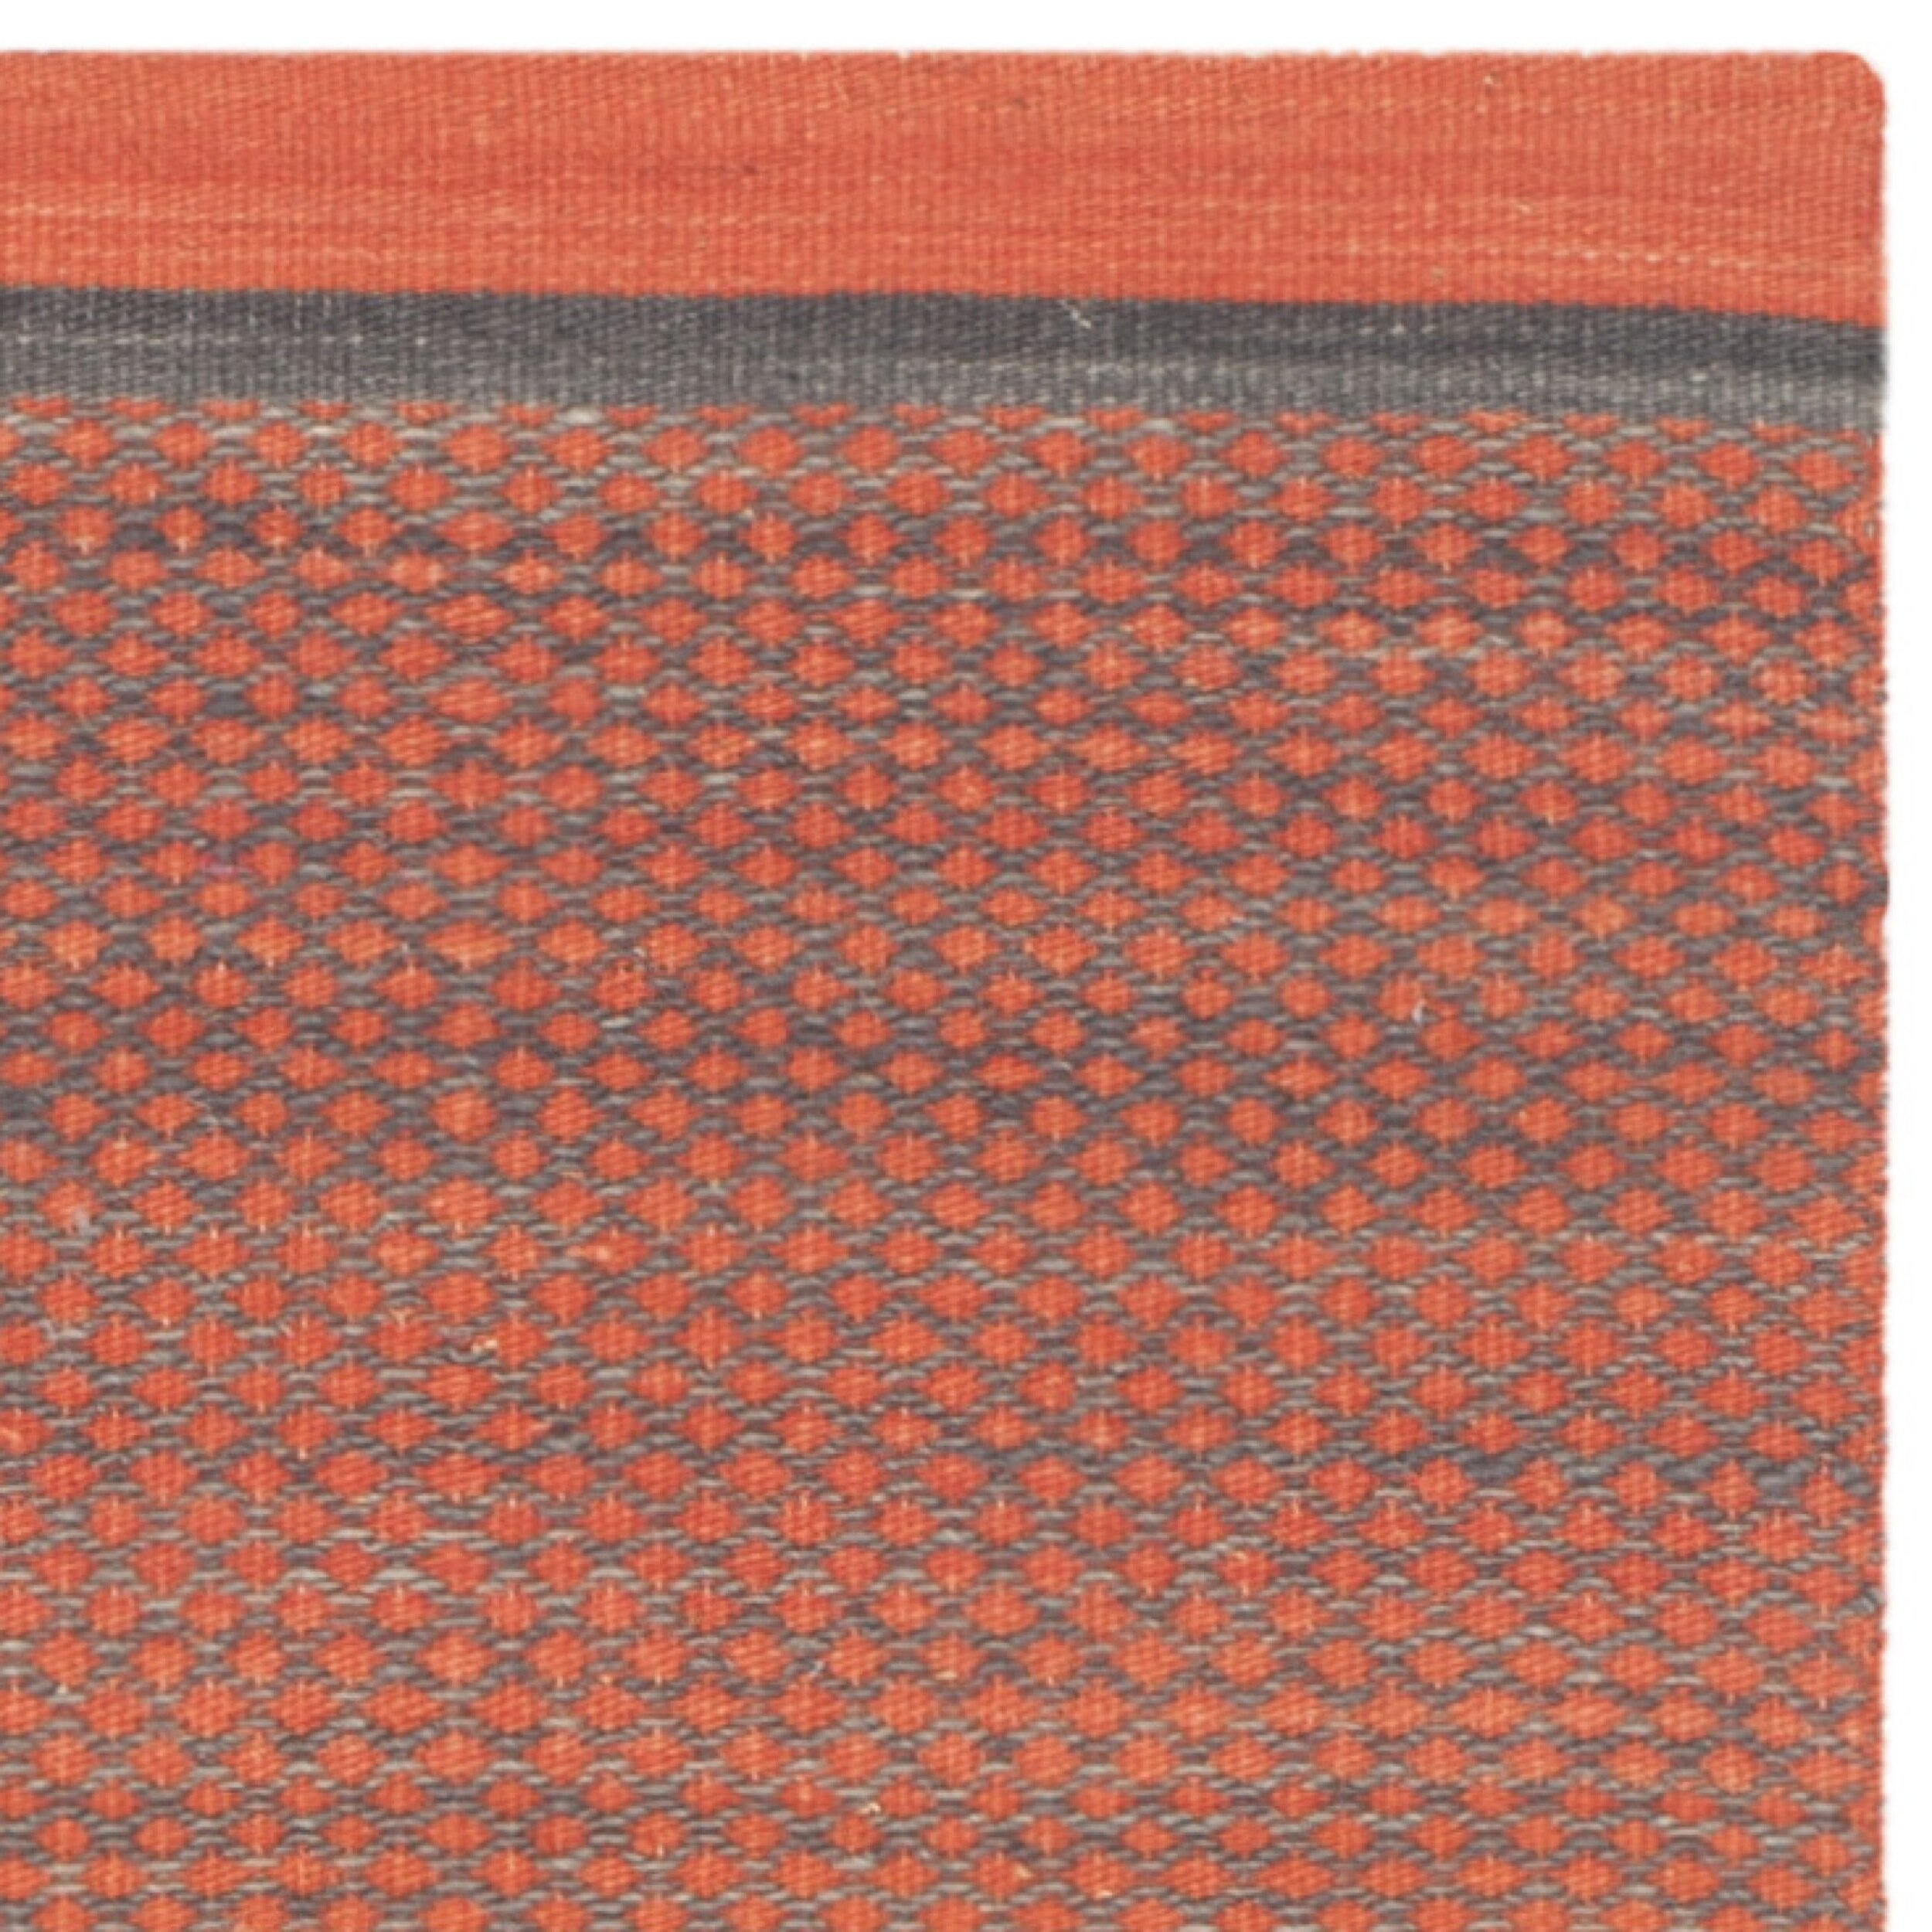 safavieh kilim dark grey orange striped rug reviews. Black Bedroom Furniture Sets. Home Design Ideas